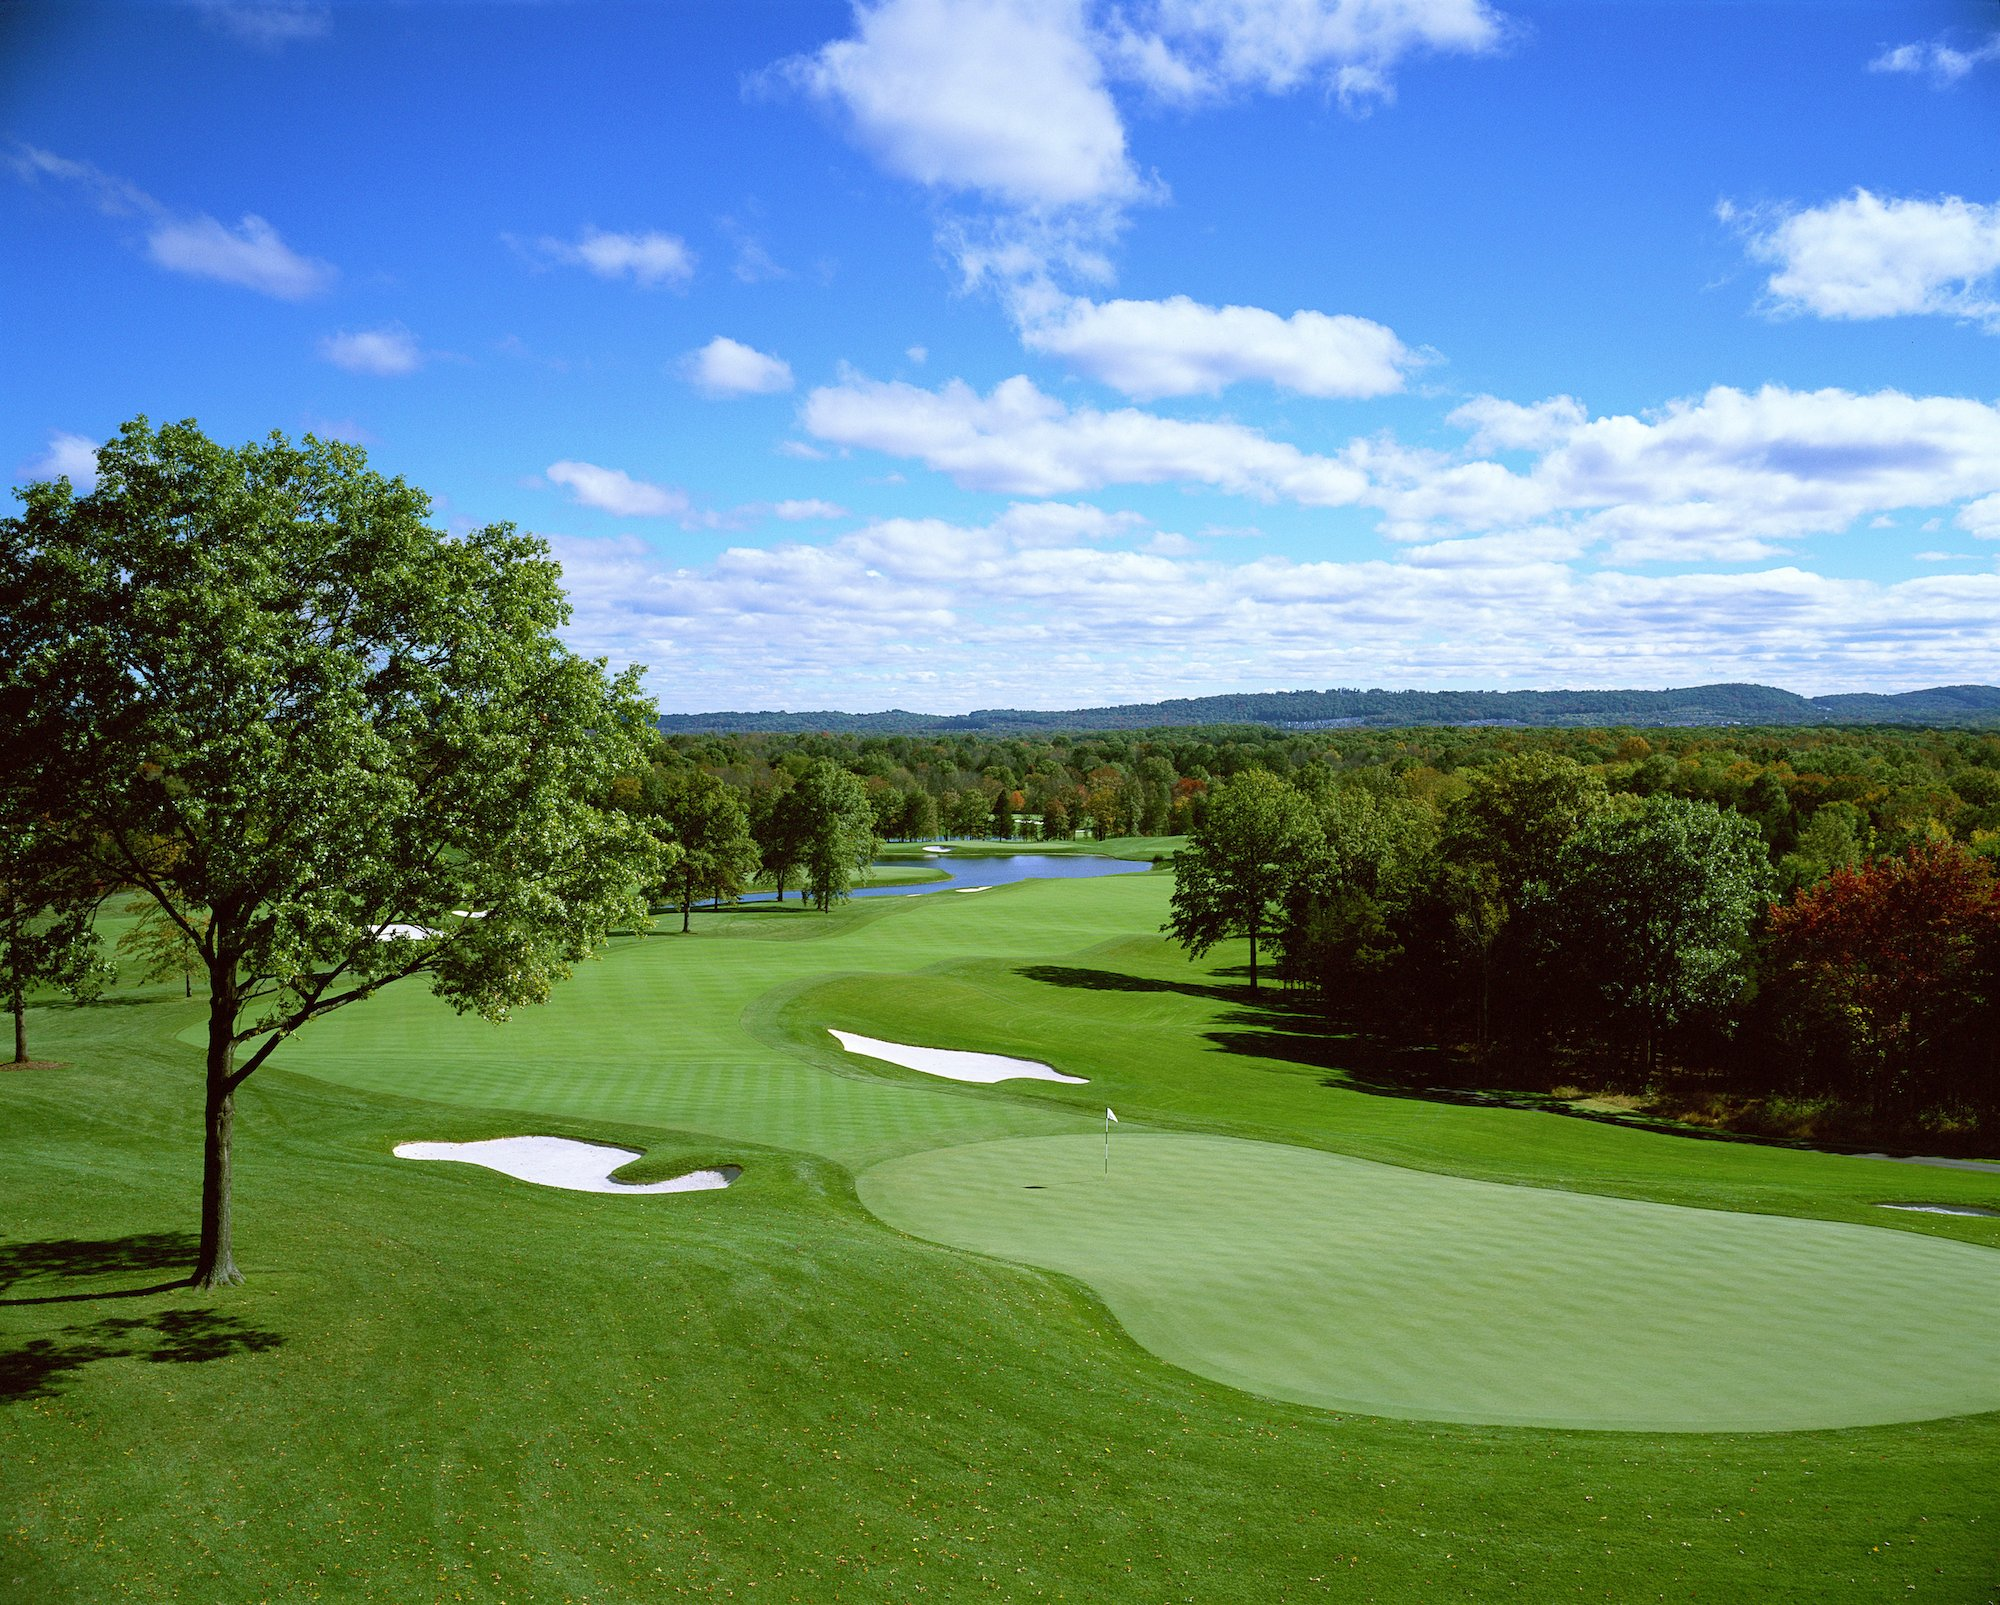 Venue for the 2017 U.S. Women's Open and 2022 PGA Championship, this 2004 Tom Fazio creation unfolds over rolling horse country terrain in rural New Jersey.  Its massive scale provides for a 7,560-yard layout, with huge bunkers, extra-large greens and plenty of risk/reward options. A 2015 redesign involving the closing holes has been well-received.